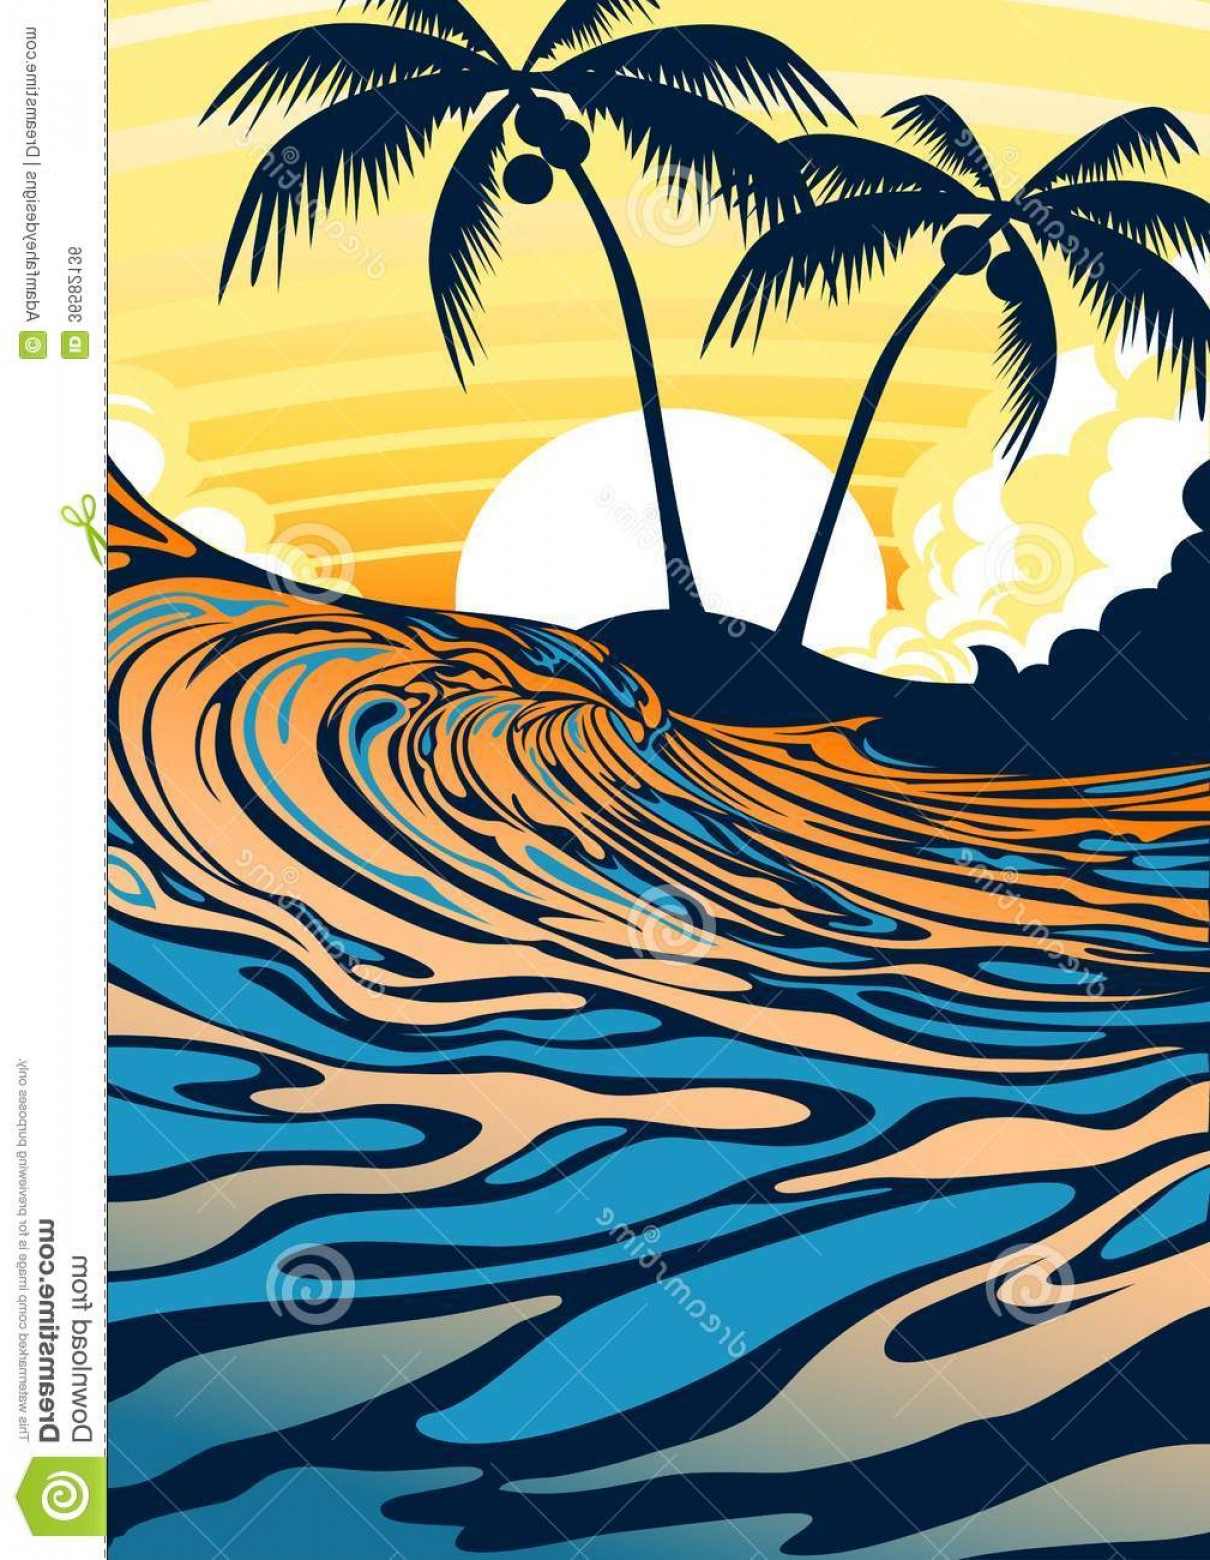 Beach Surf Vectors: Royalty Free Stock Image Surf Beach Sunrise Vector Illustration Surfing Wave Palm Trees Image